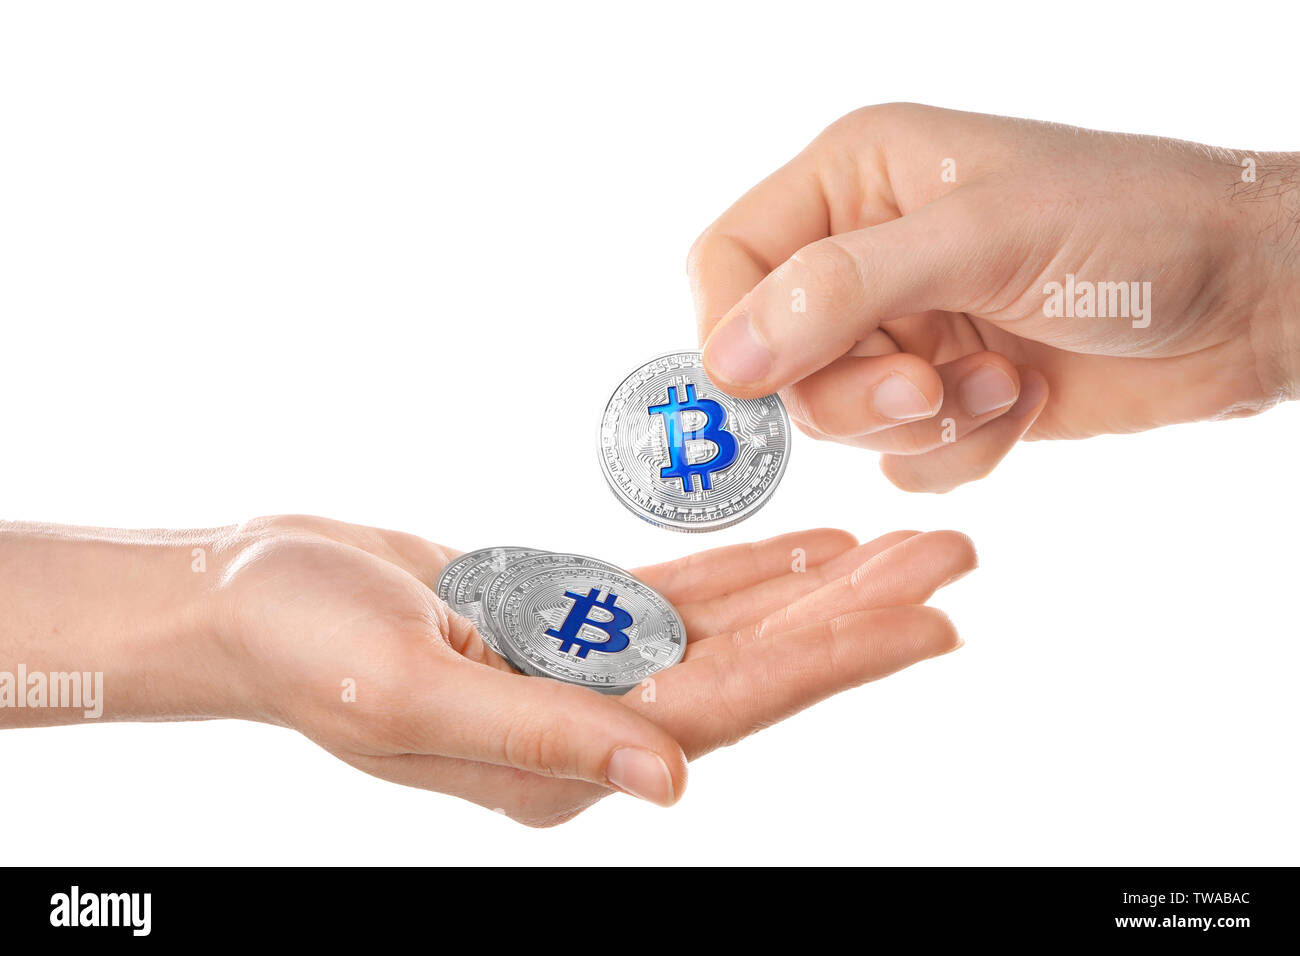 Man giving silver bitcoin to woman on white background - Stock Image